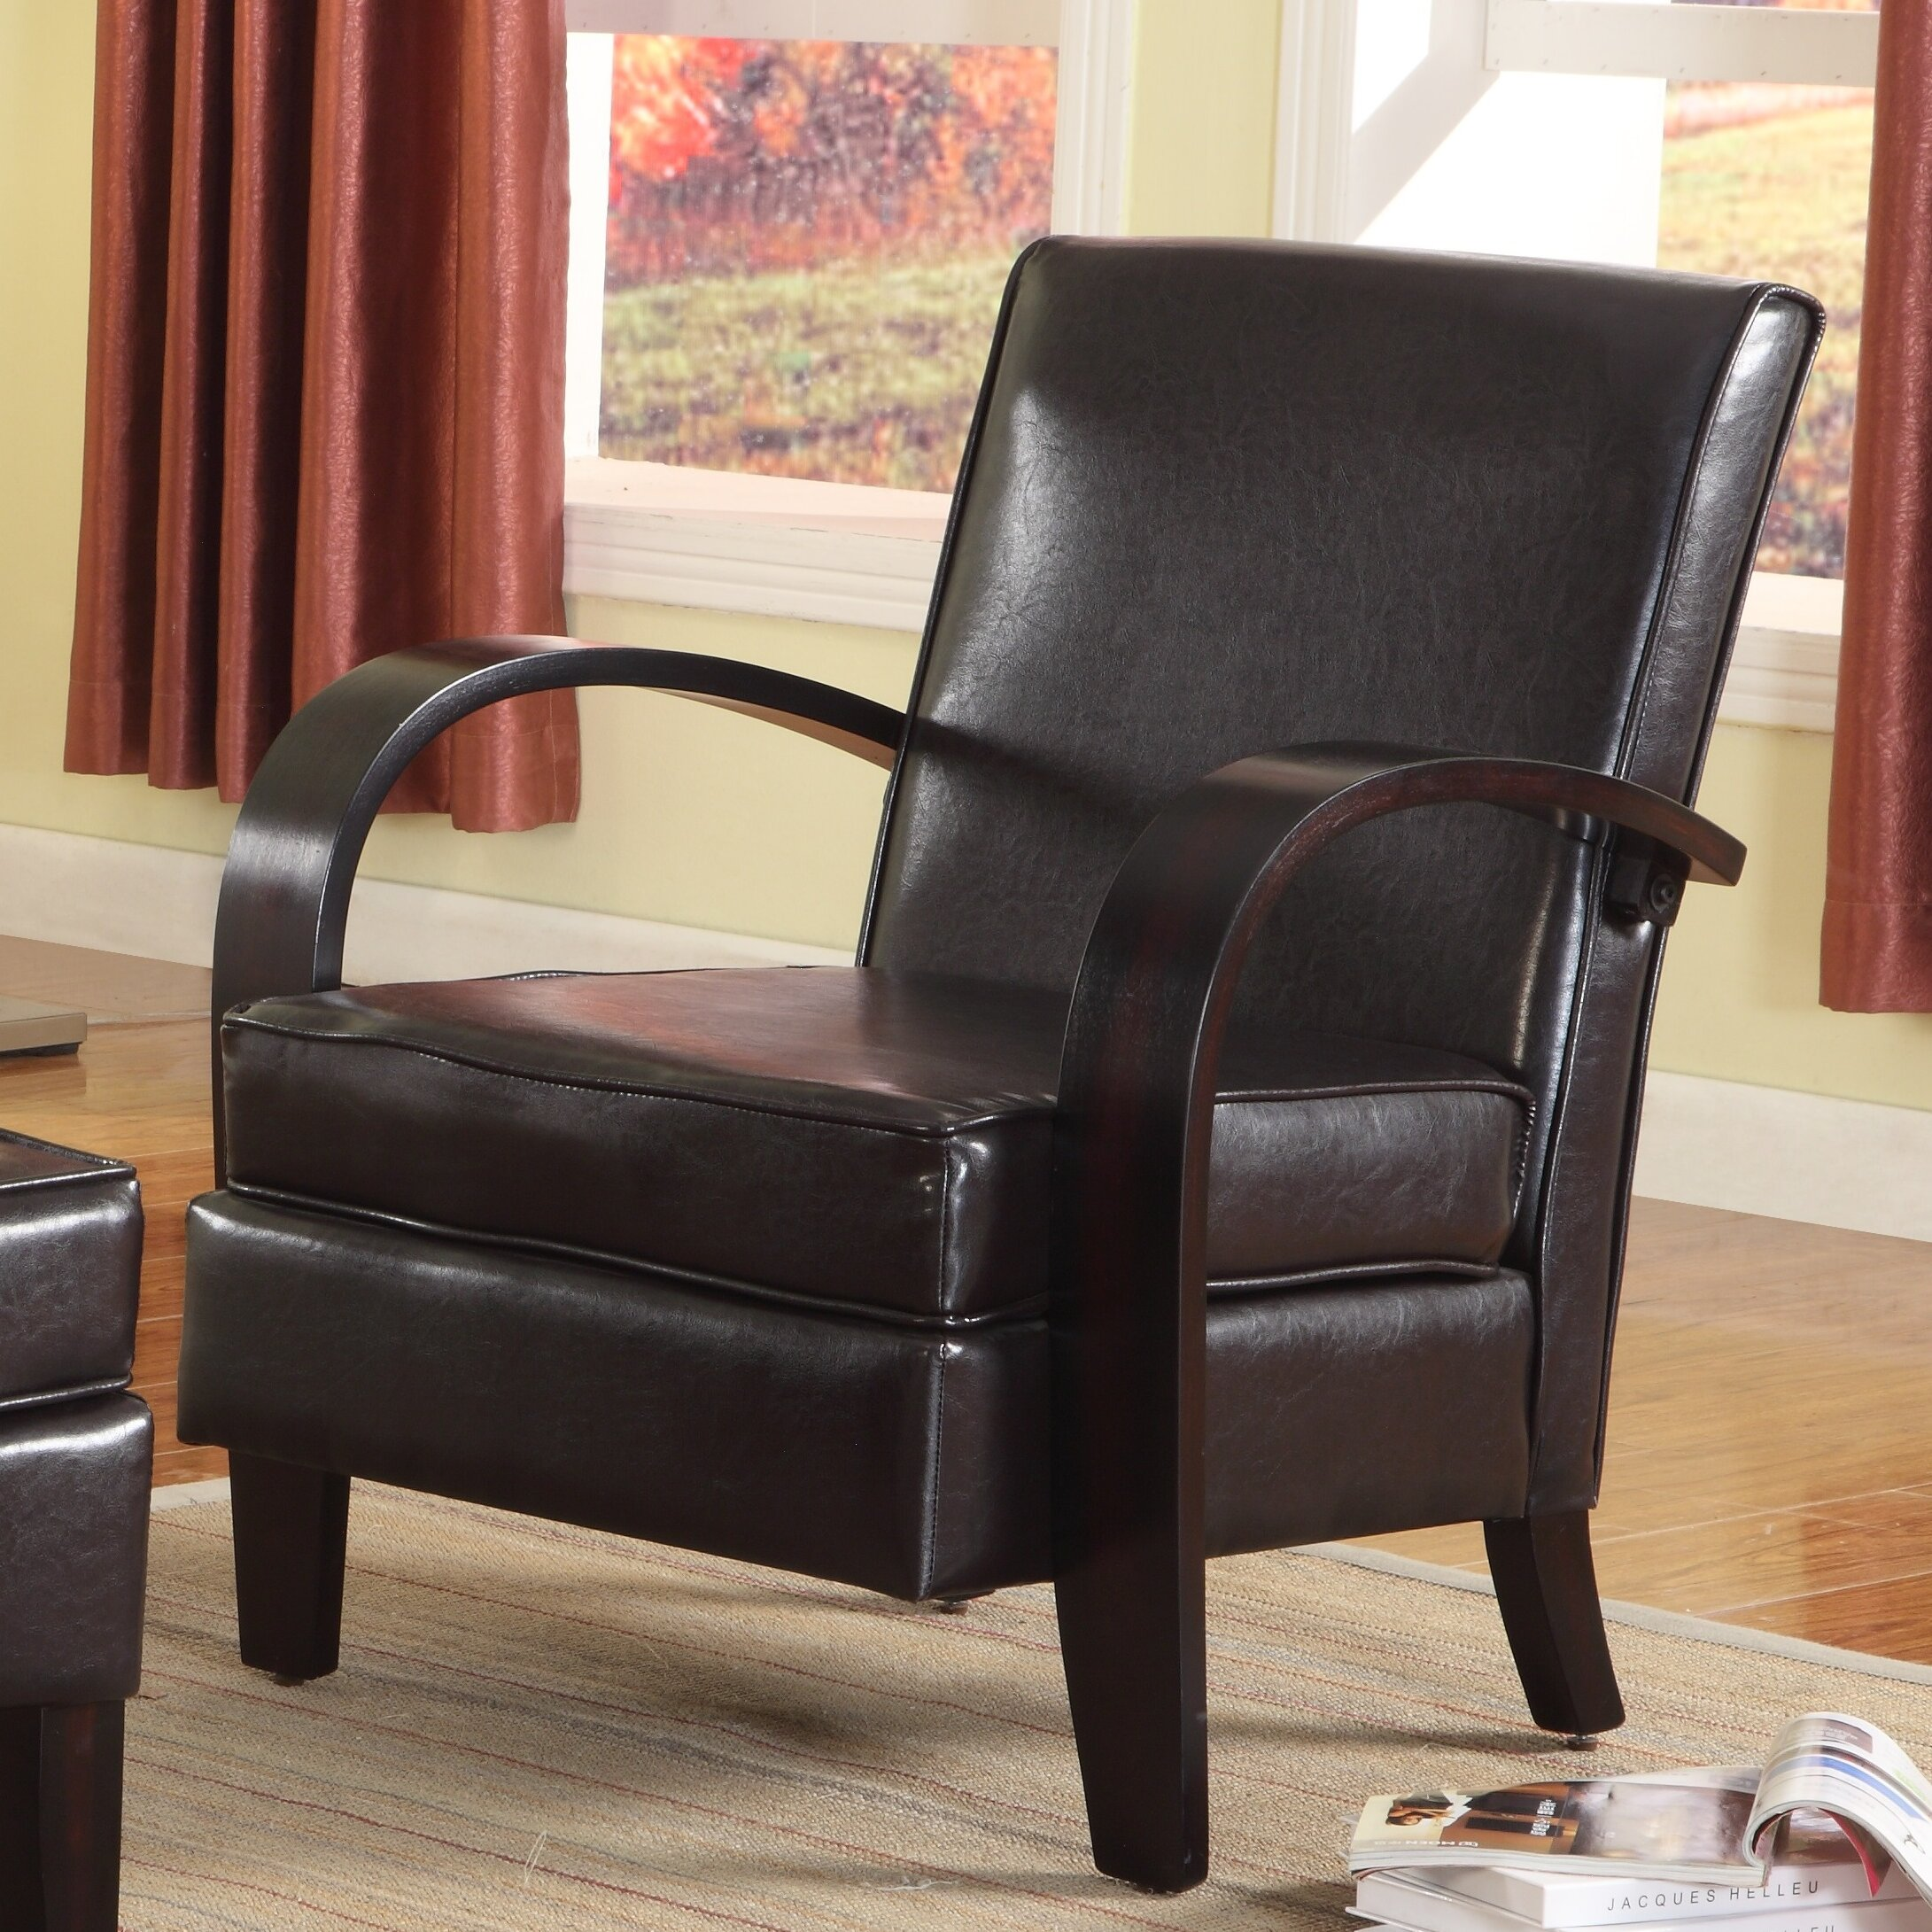 Leather Chair With Metal Accent On Arms: Wonda Bonded Leather Arm Chair